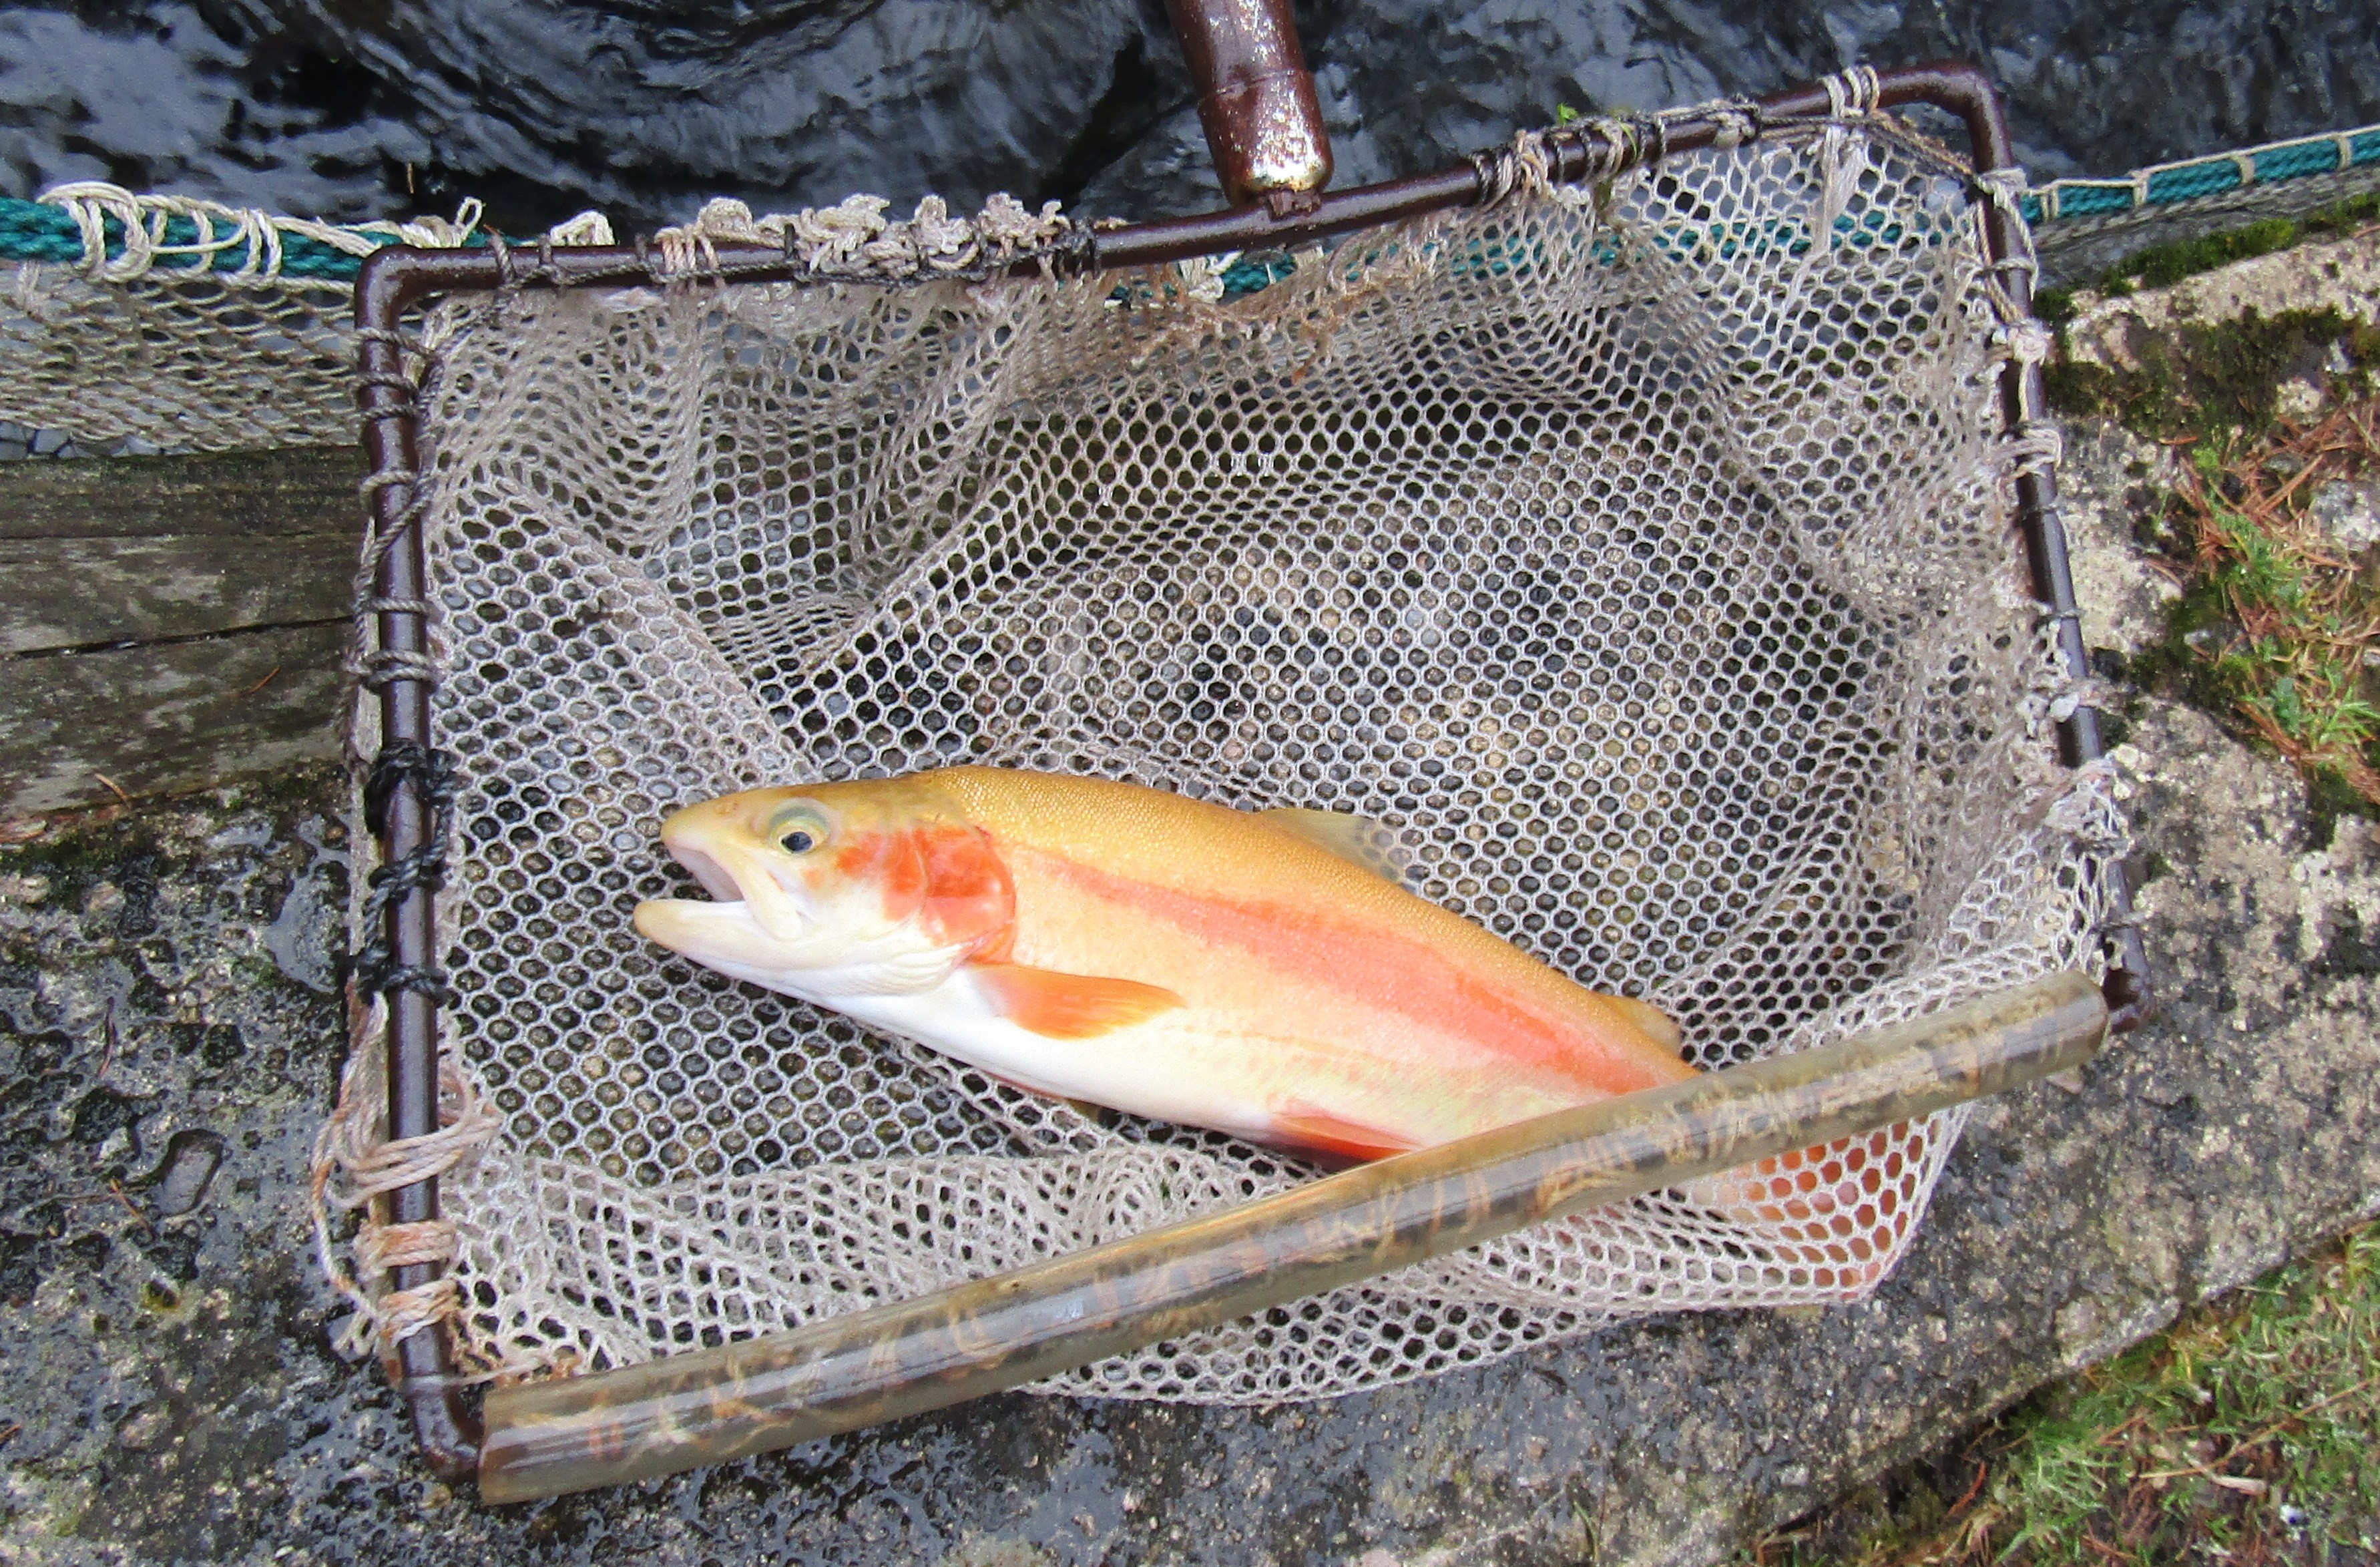 Golden Trout Fishing | Dem Stocks Ponds With Golden Trout For Free Fishing Weekend The